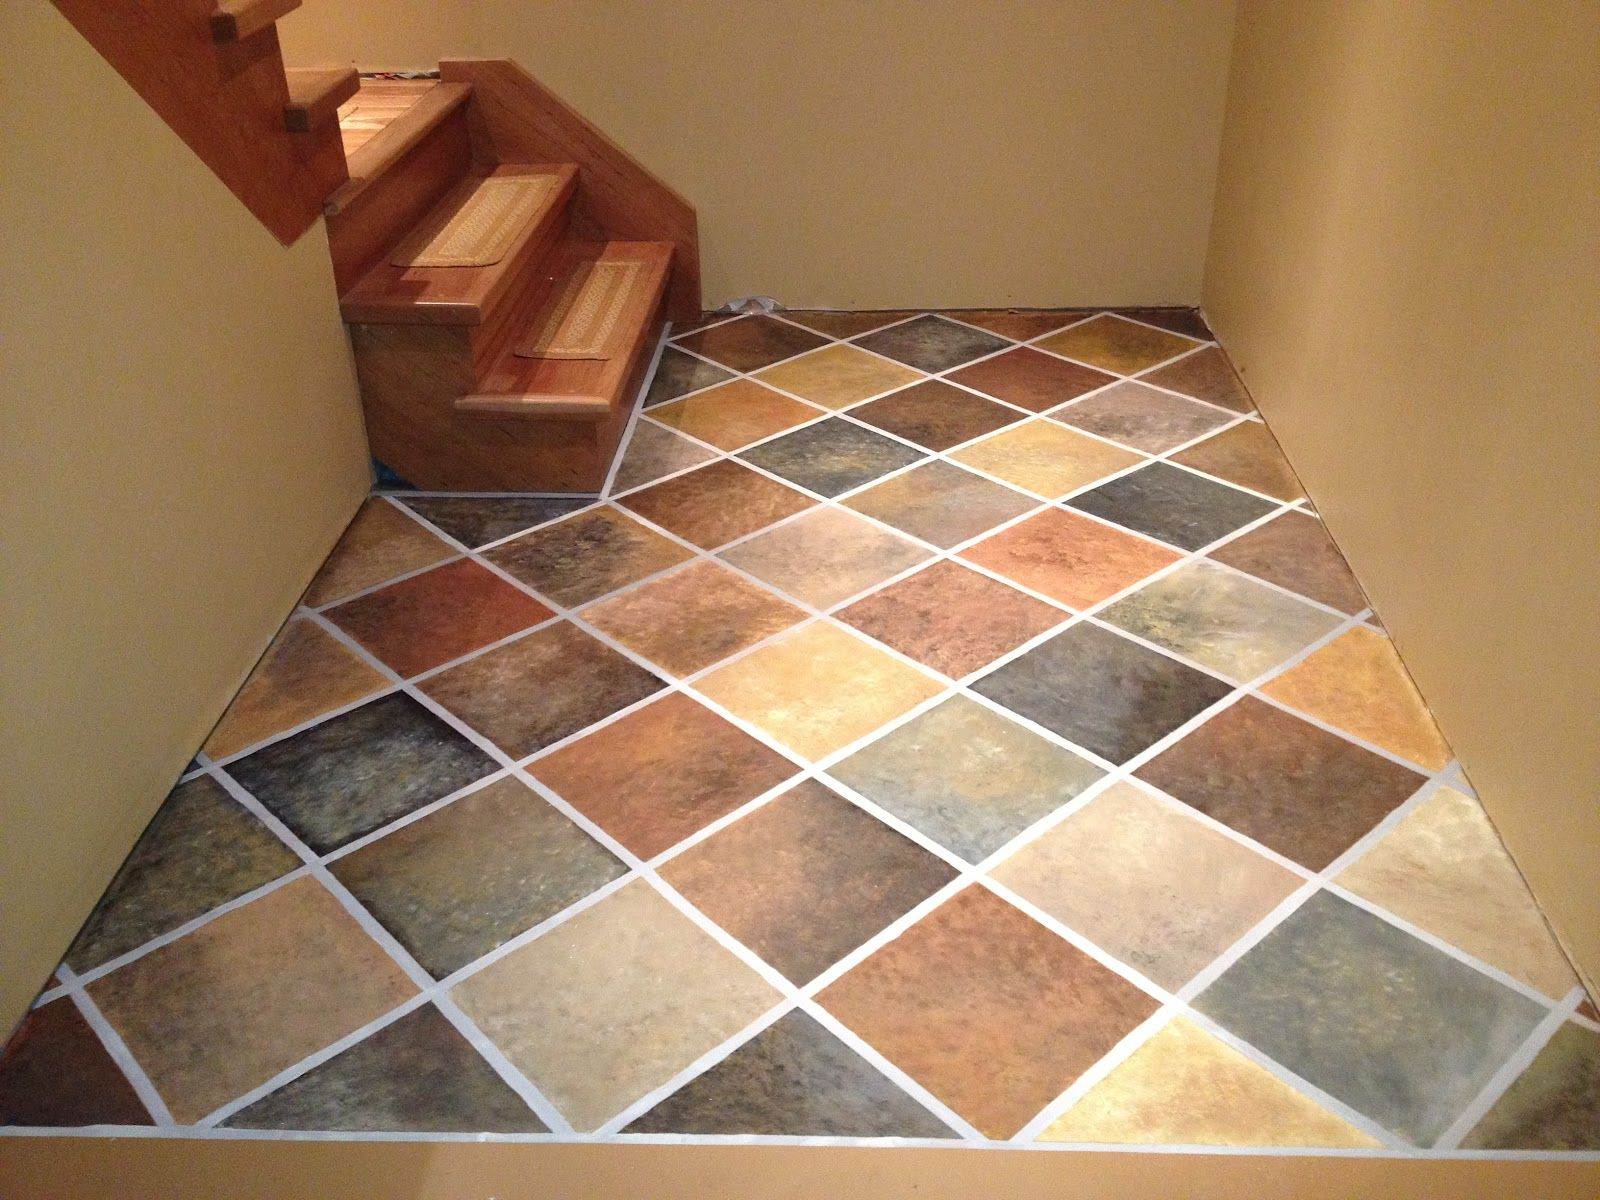 Paint basement concrete floor google search concrete floors stonehaven simple pleasures hand painted faux slate tile floor maybe not tiles but like they thought of painting the basement floor to a faux finish dailygadgetfo Image collections